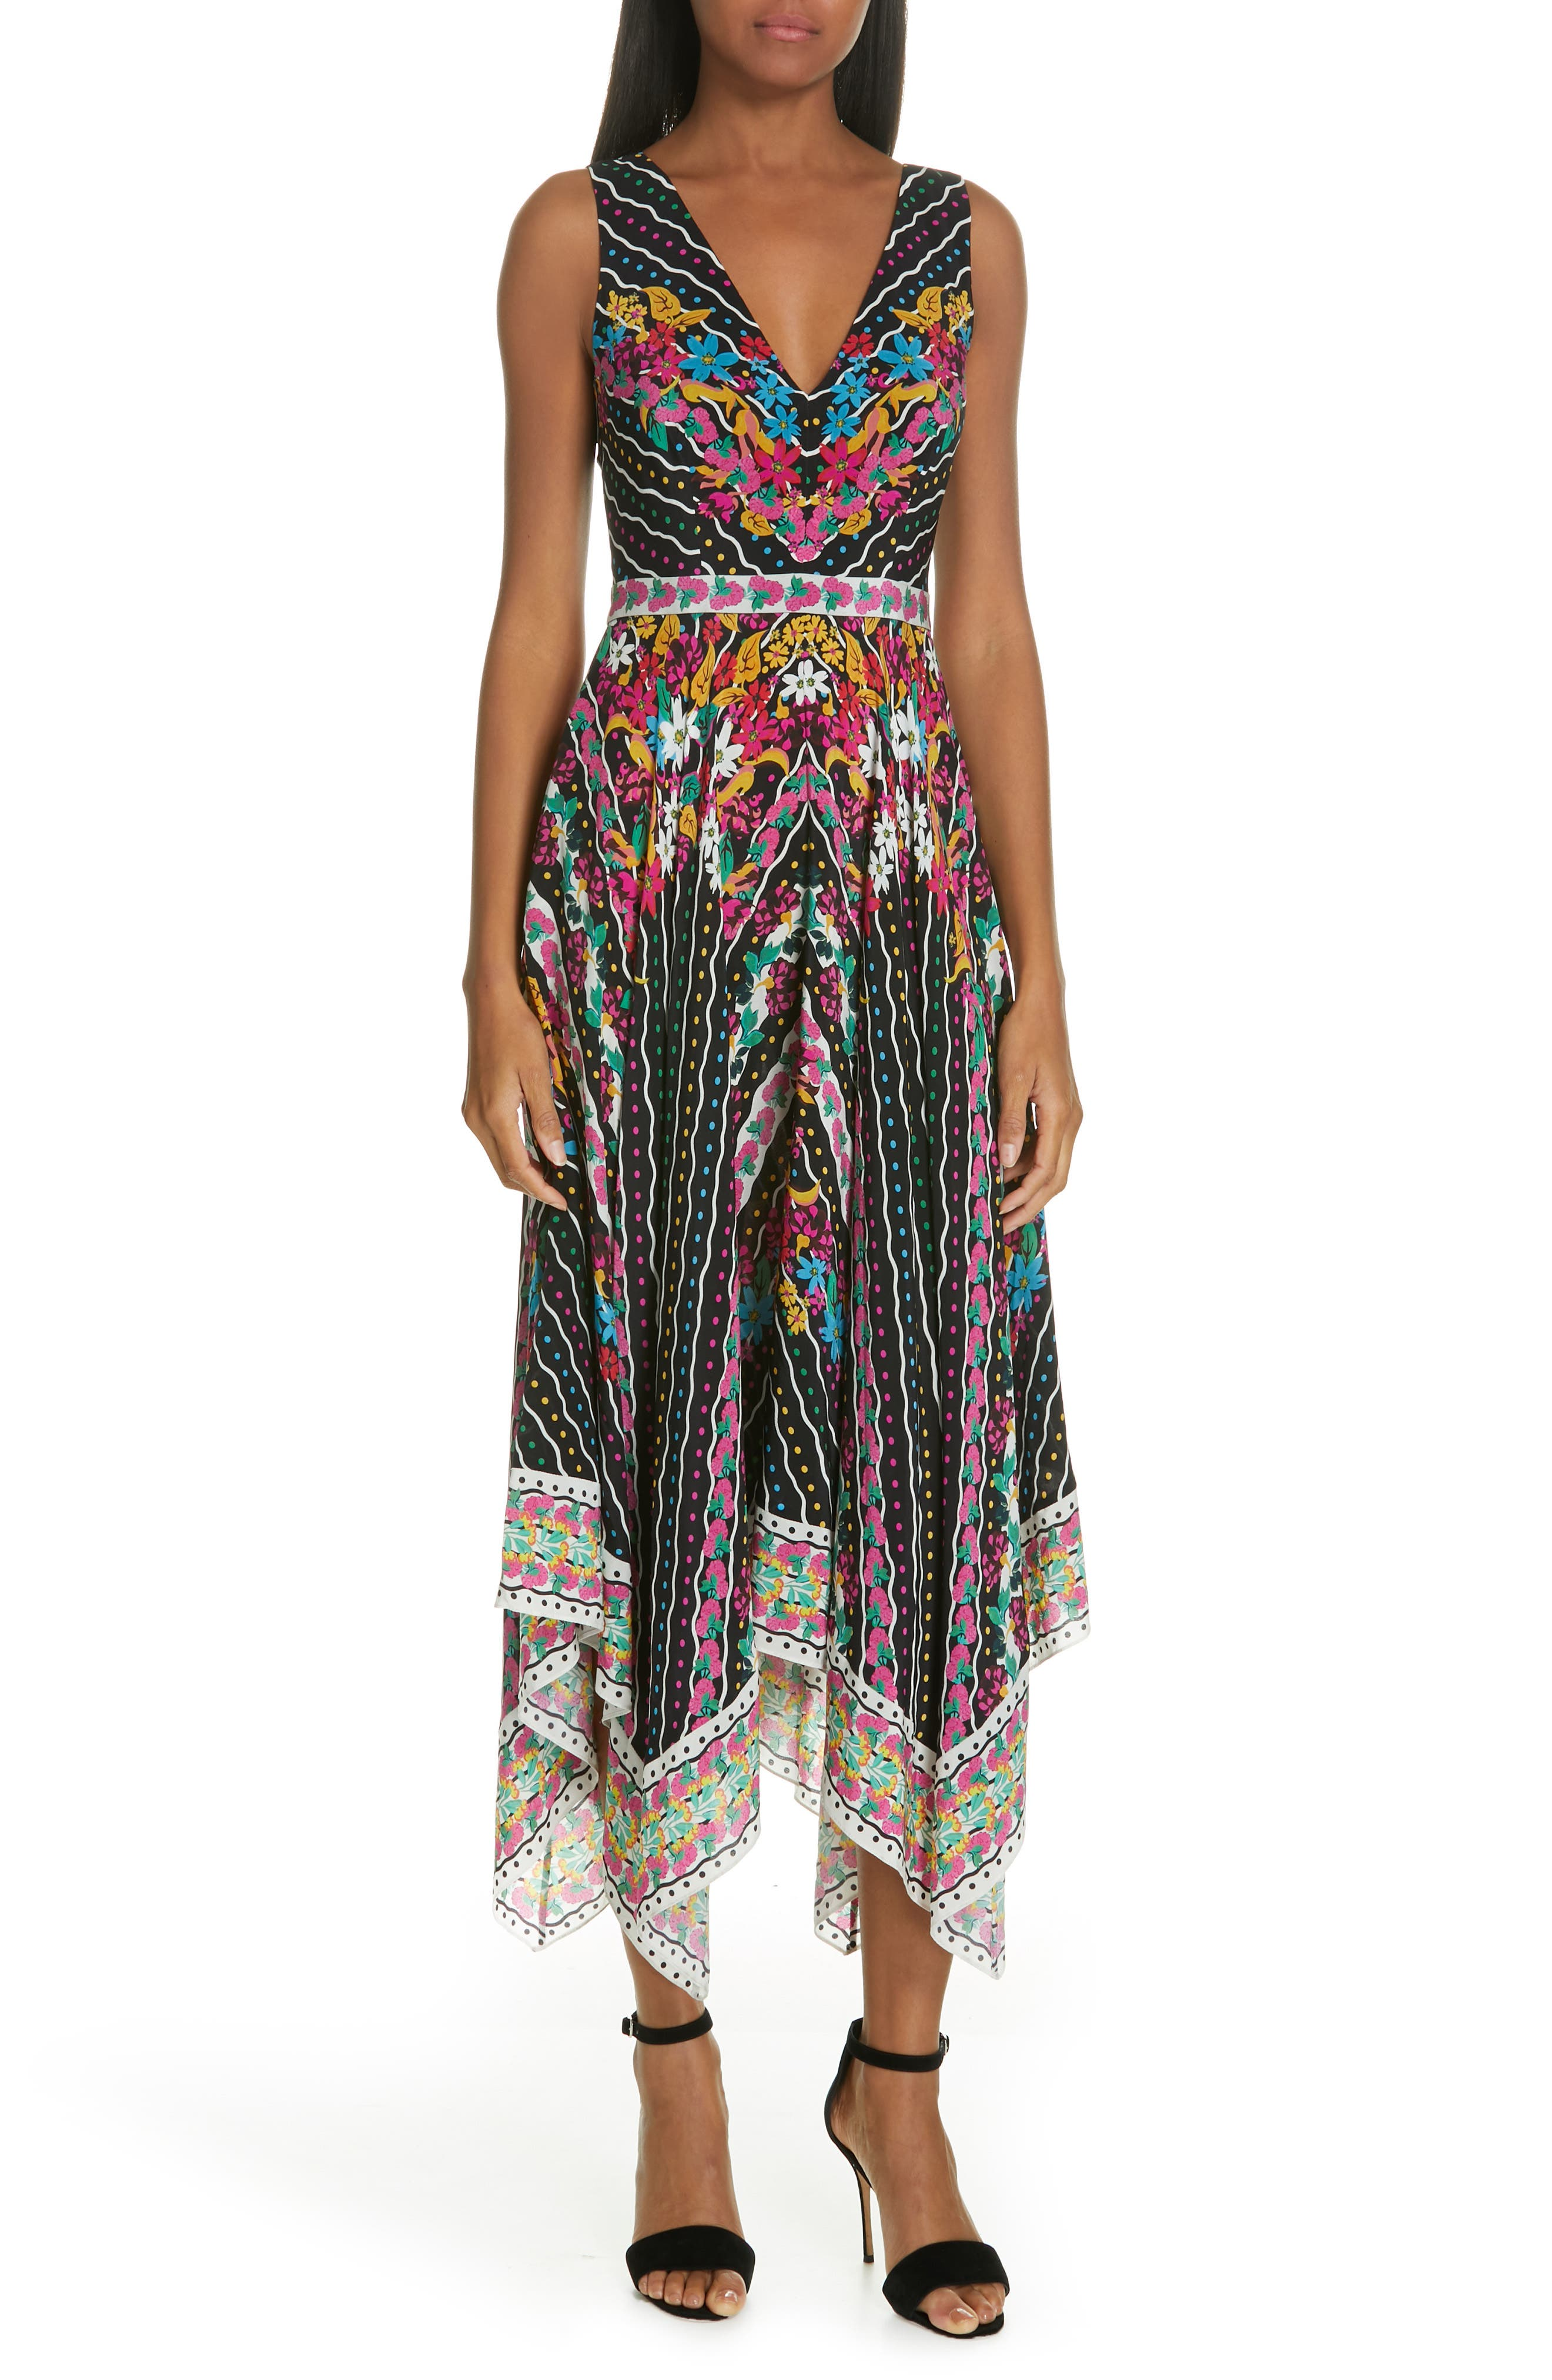 SALONI Zuri Floral Print Dress, Main, color, 001